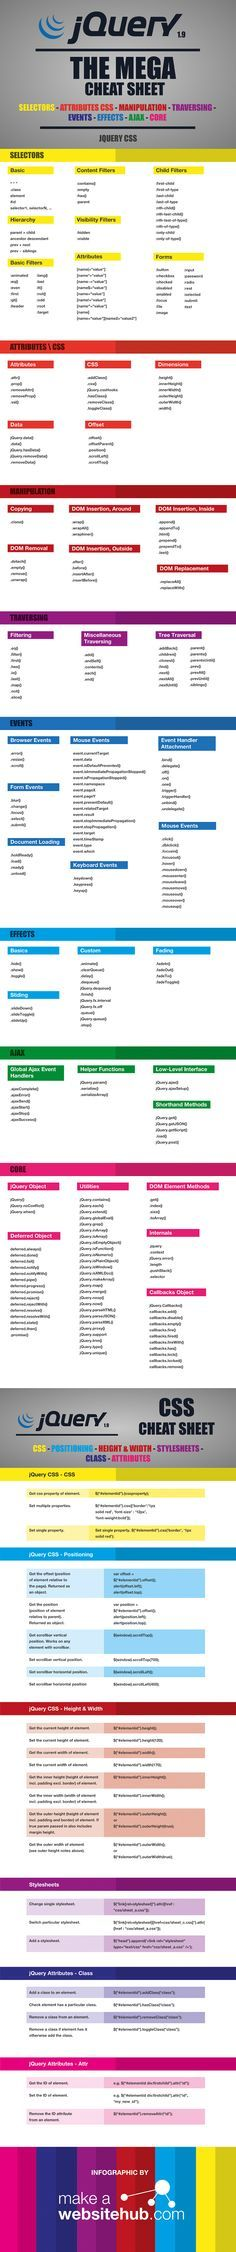 jQuery-Cheat-Sheet. (Grafik: MakeAWebsiteHub.com)